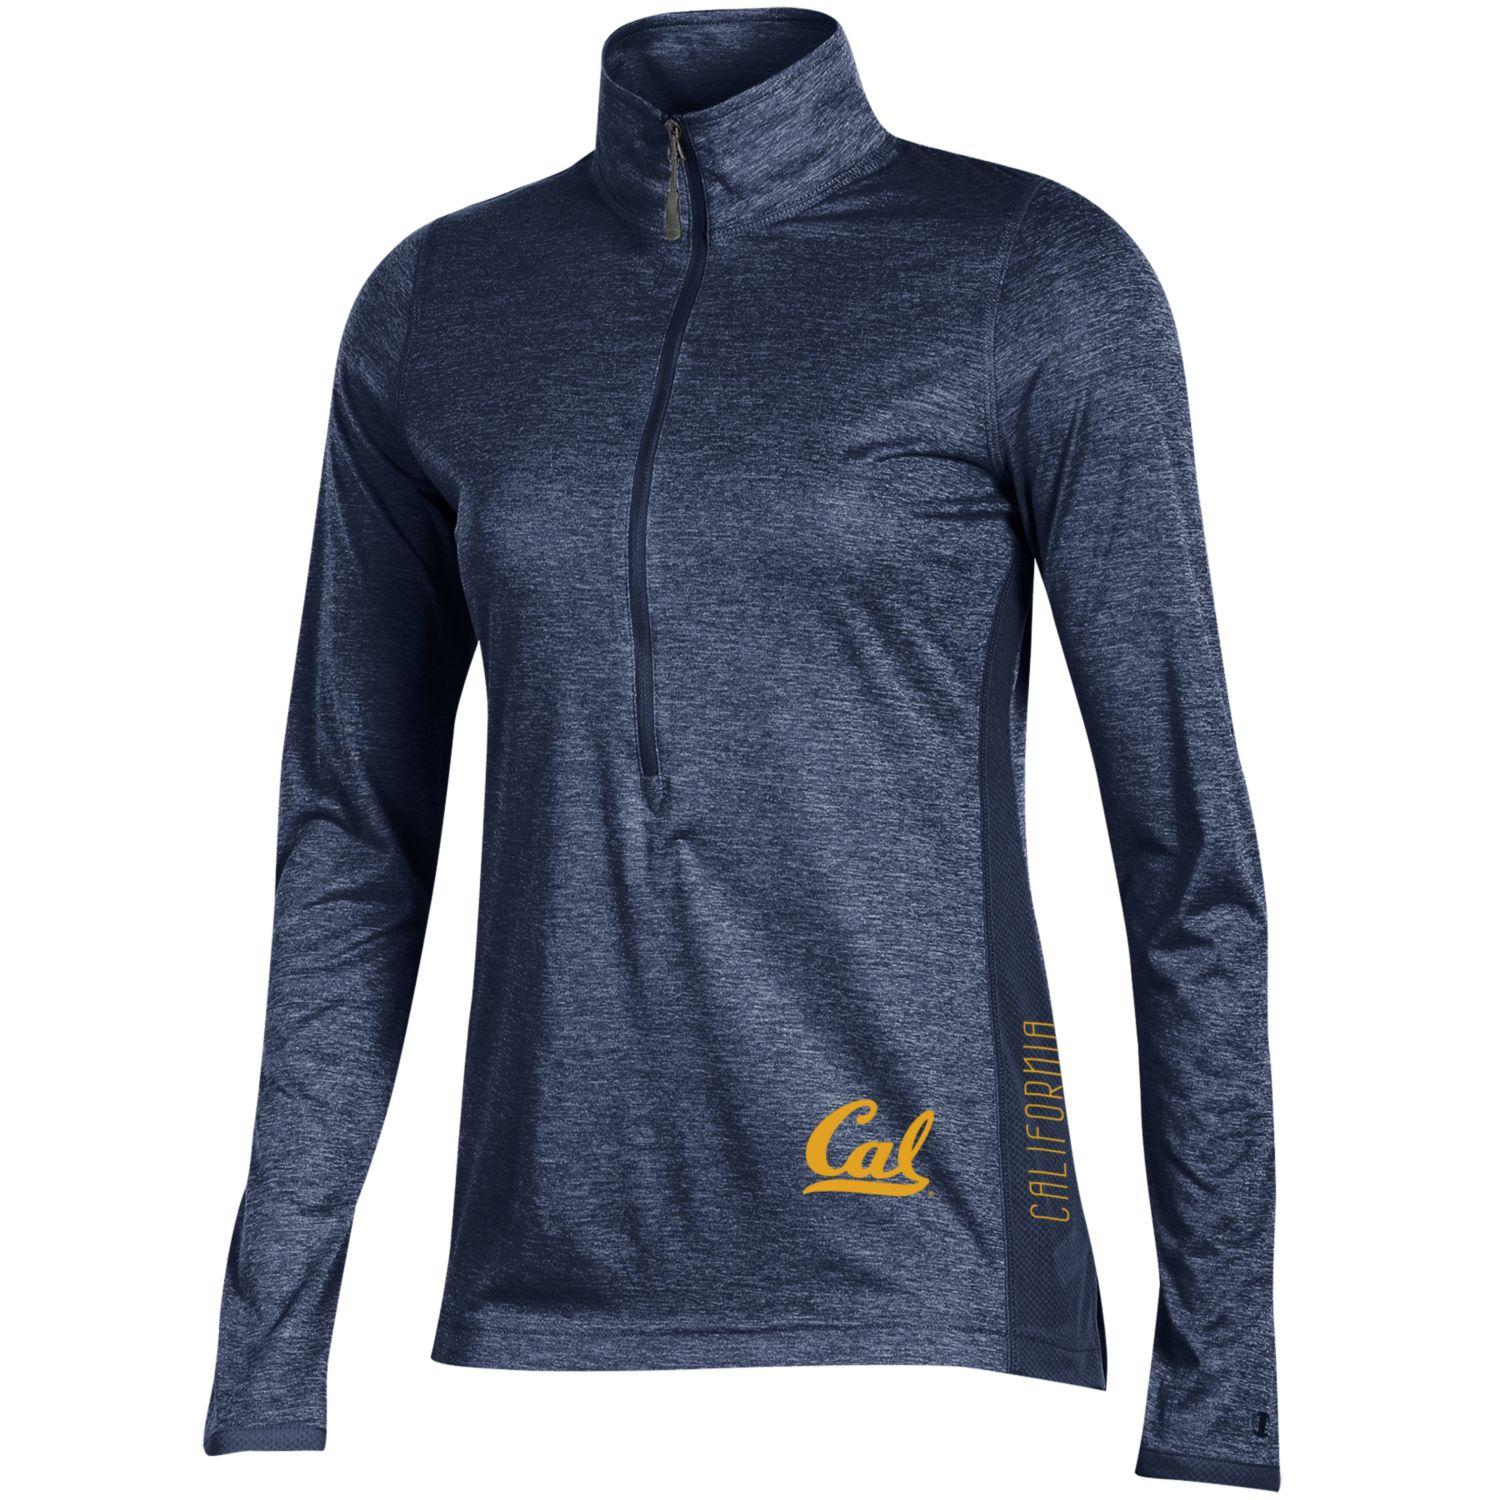 Cal Bears Champion Women's Marathon QZ Jacket